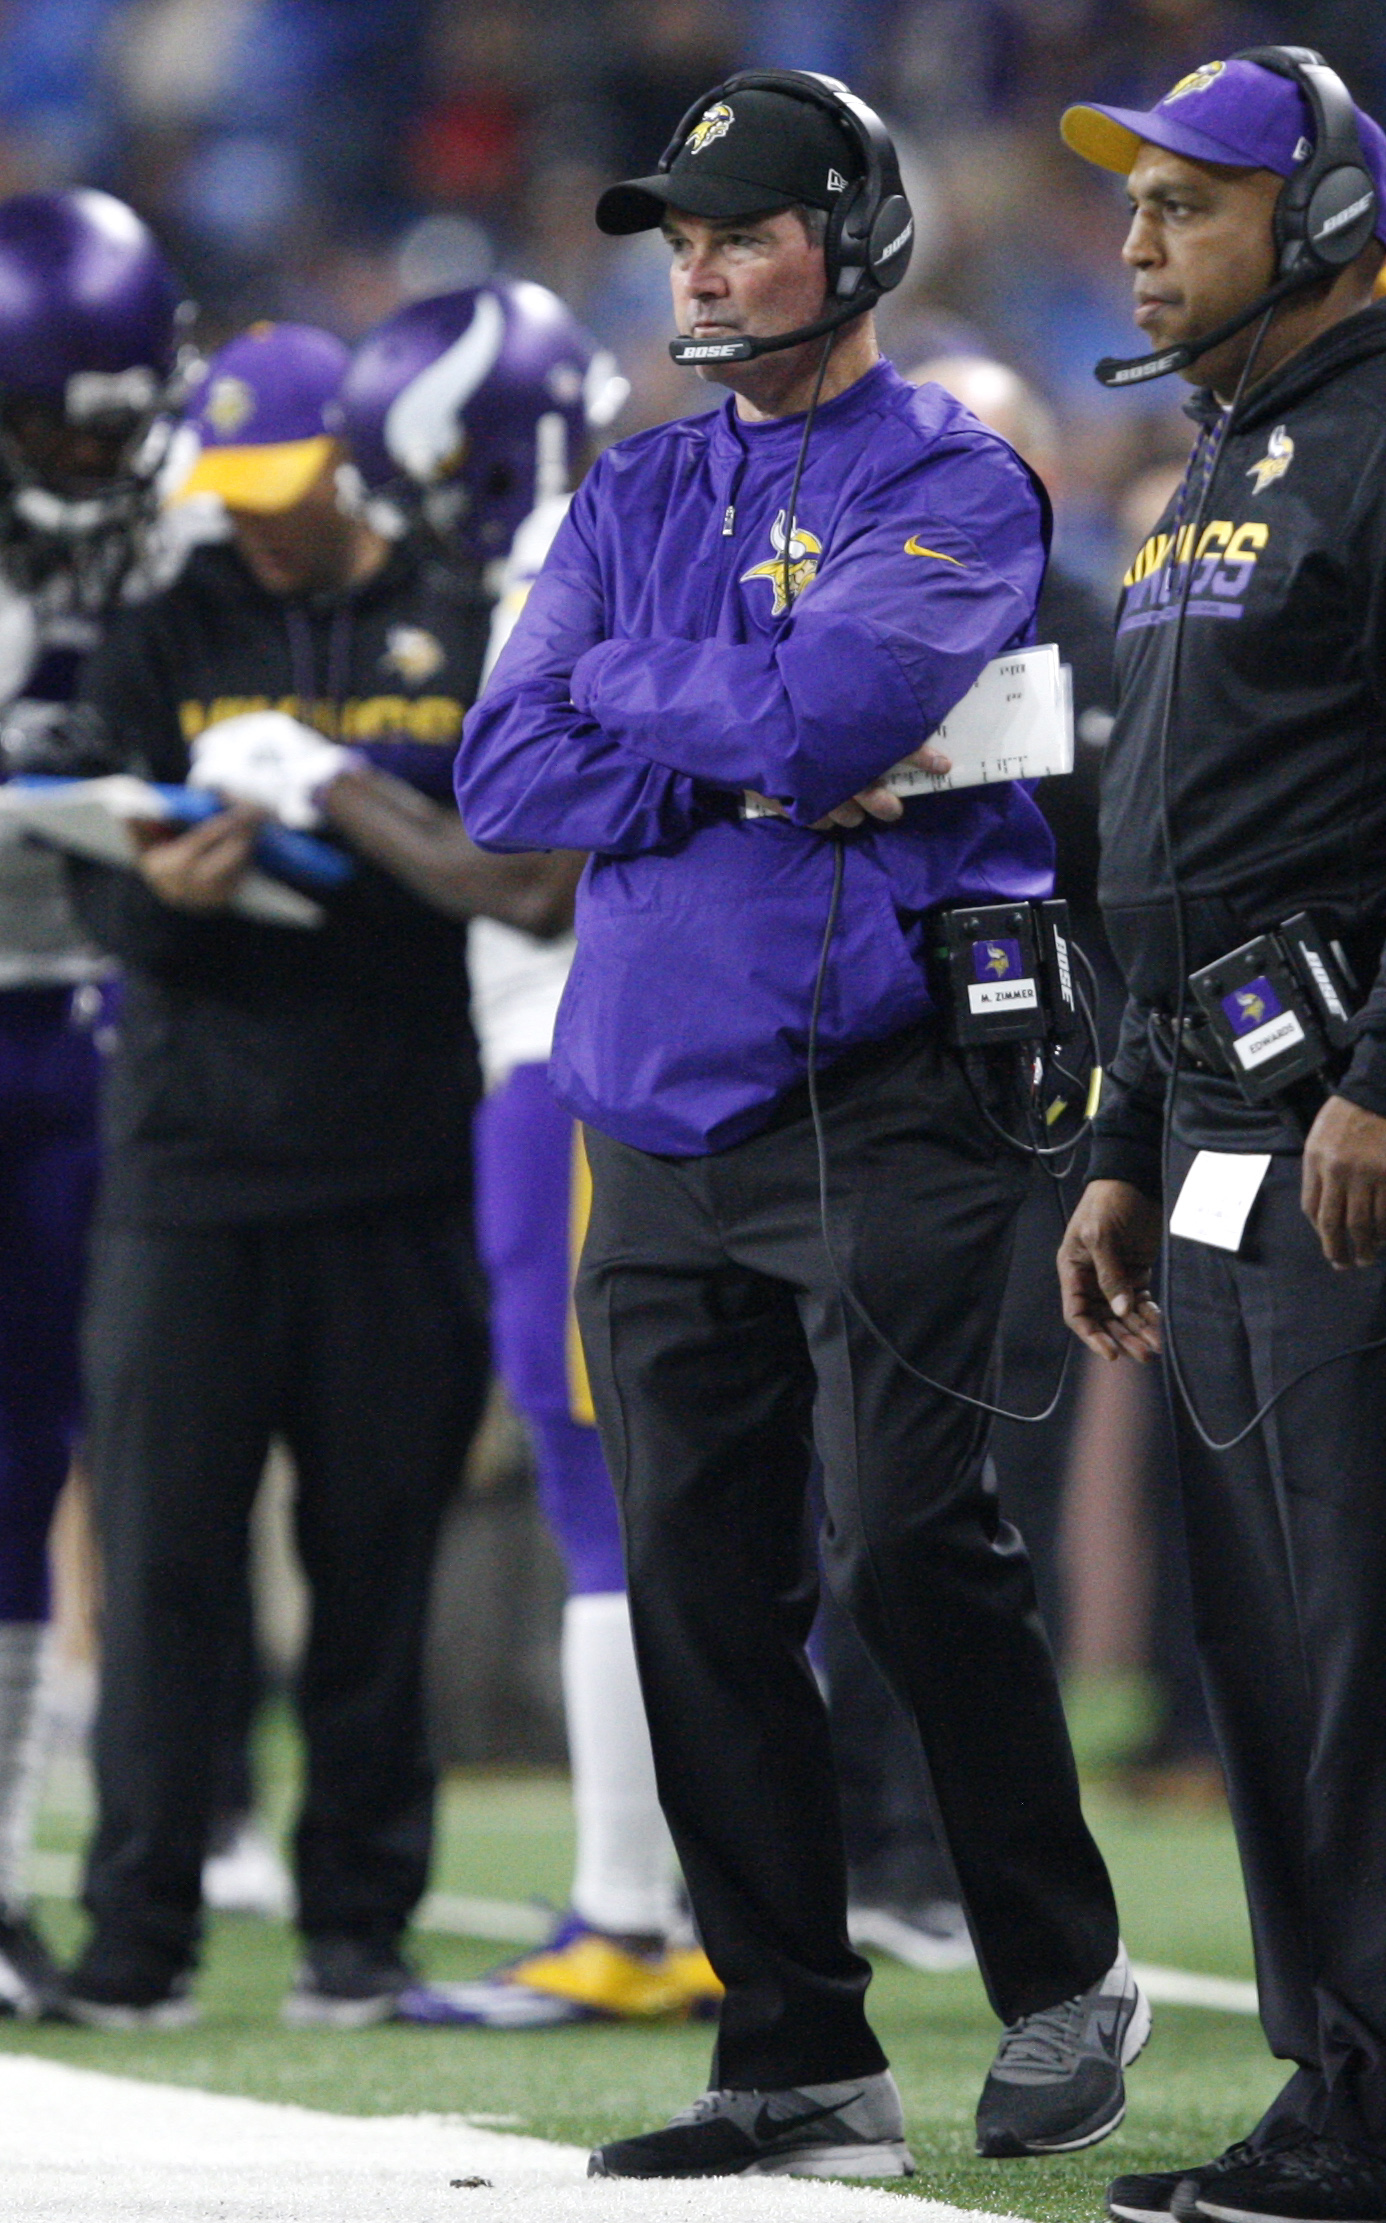 d060a2530 Mike Zimmer (Coach) - Pro Football Rumors